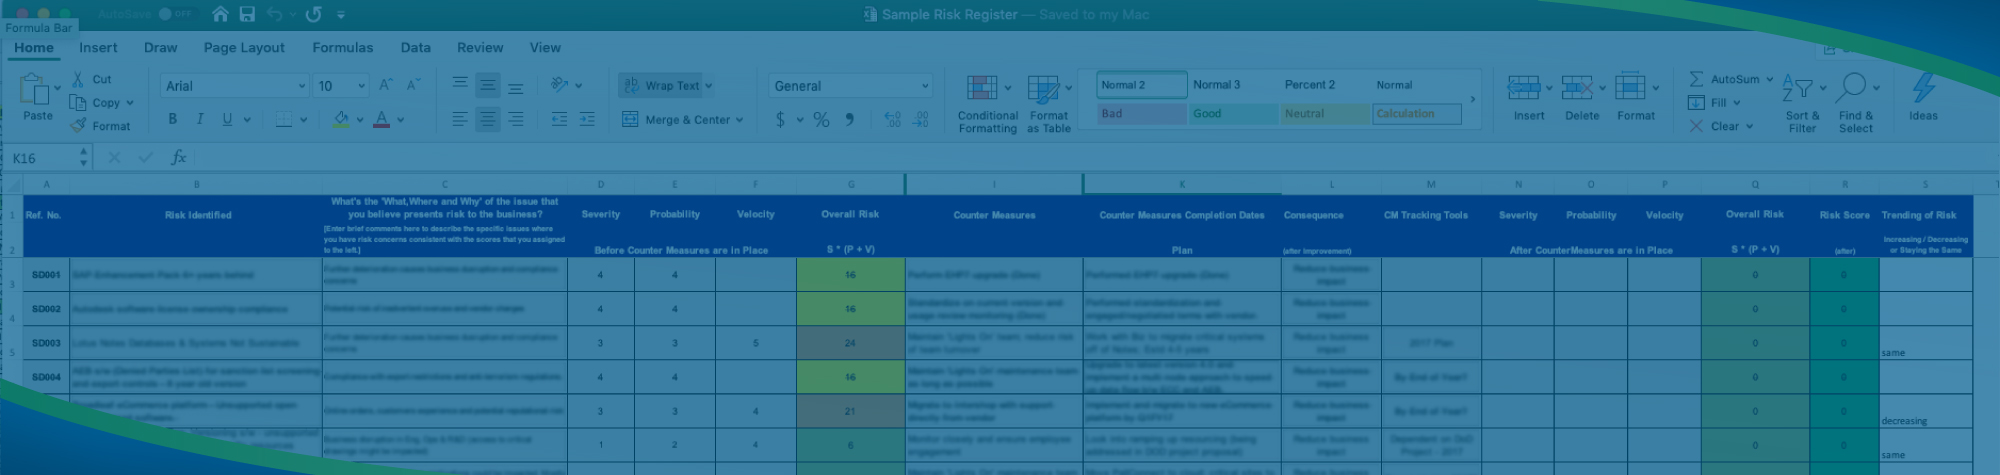 What is a Risk Register?